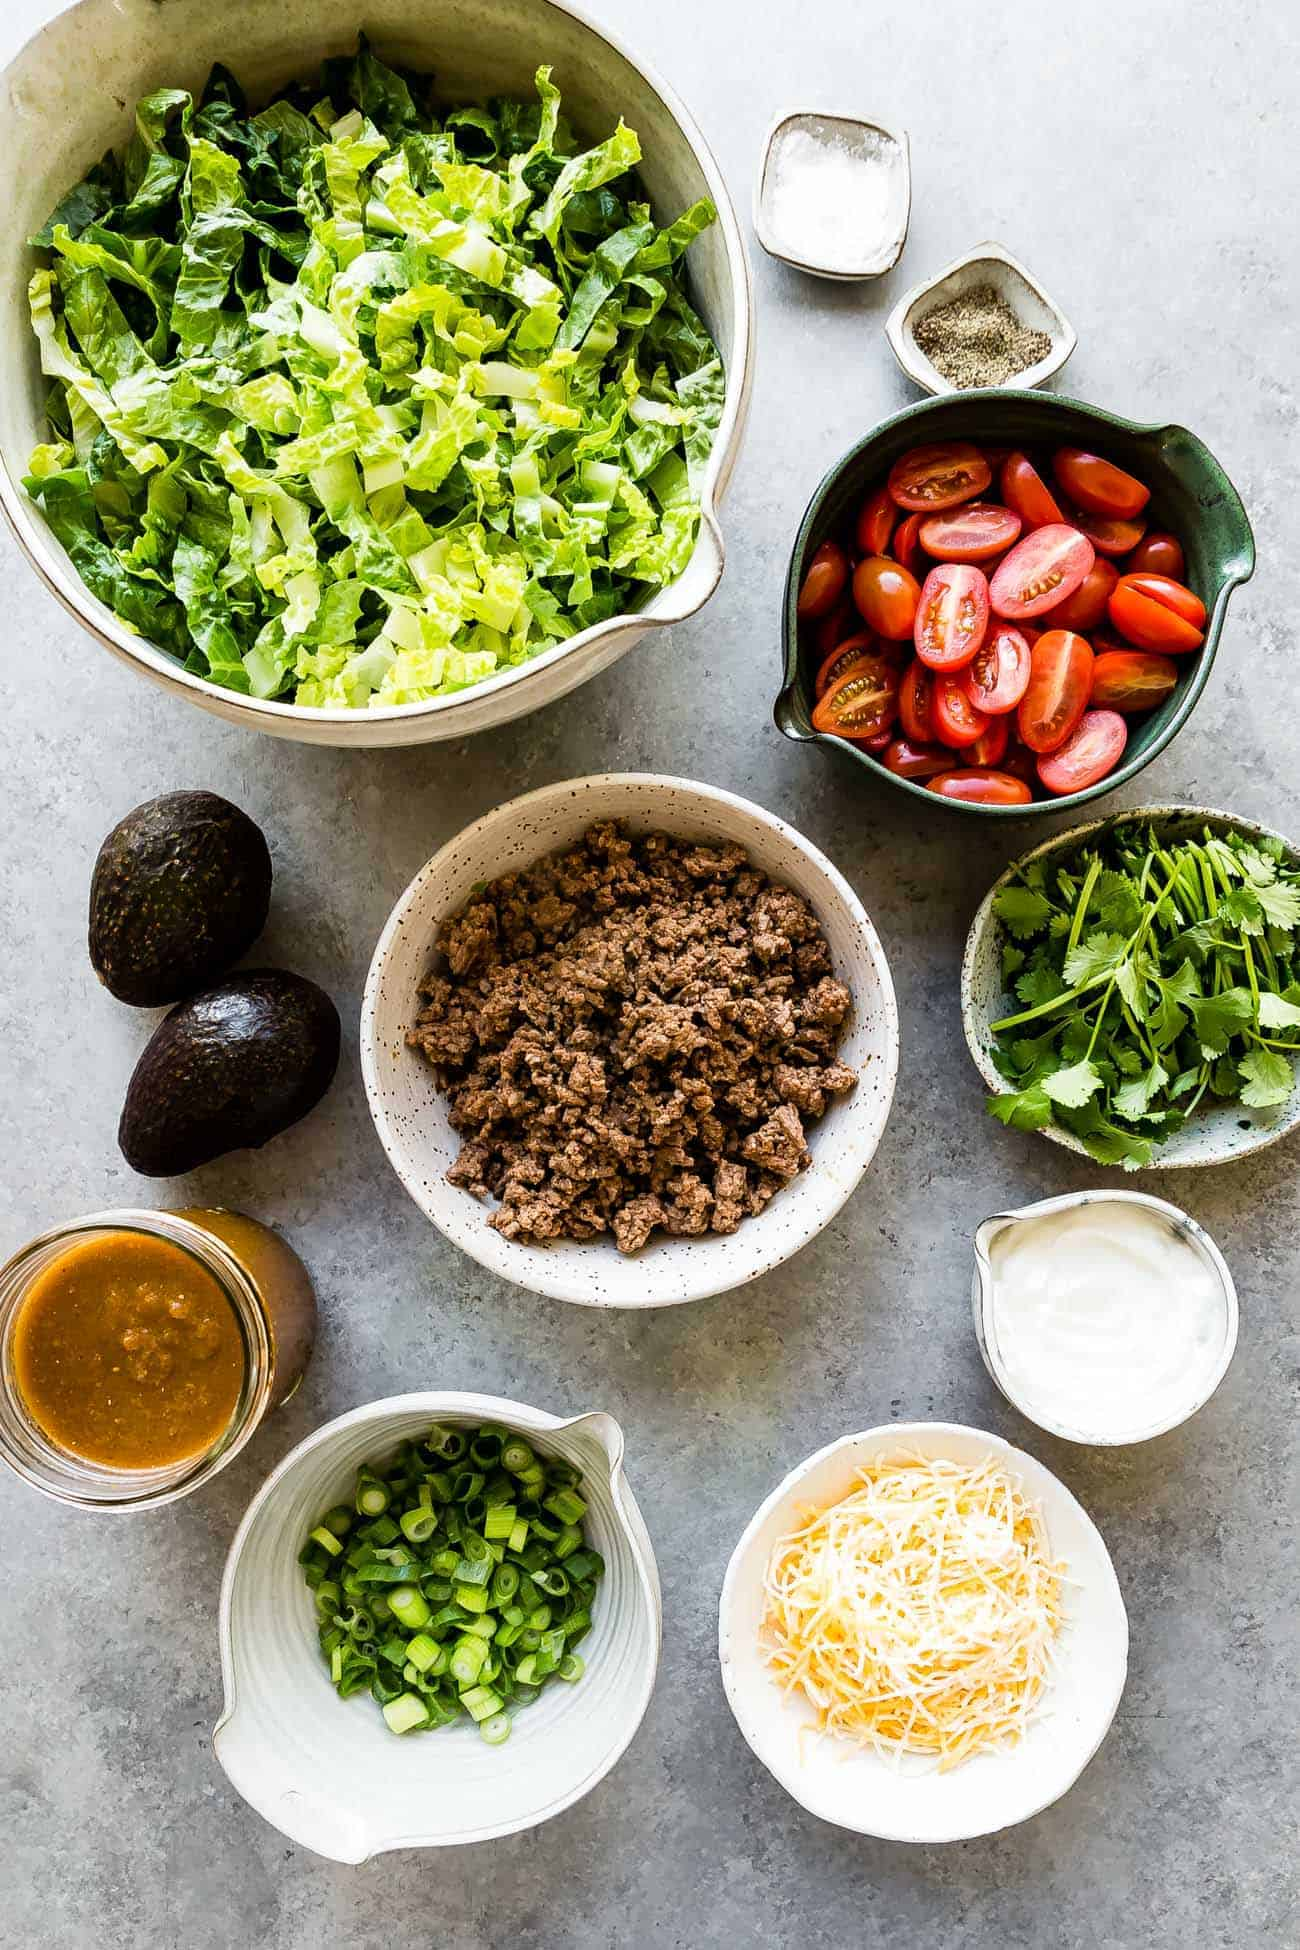 ingredients prepped in bowls to make taco salad